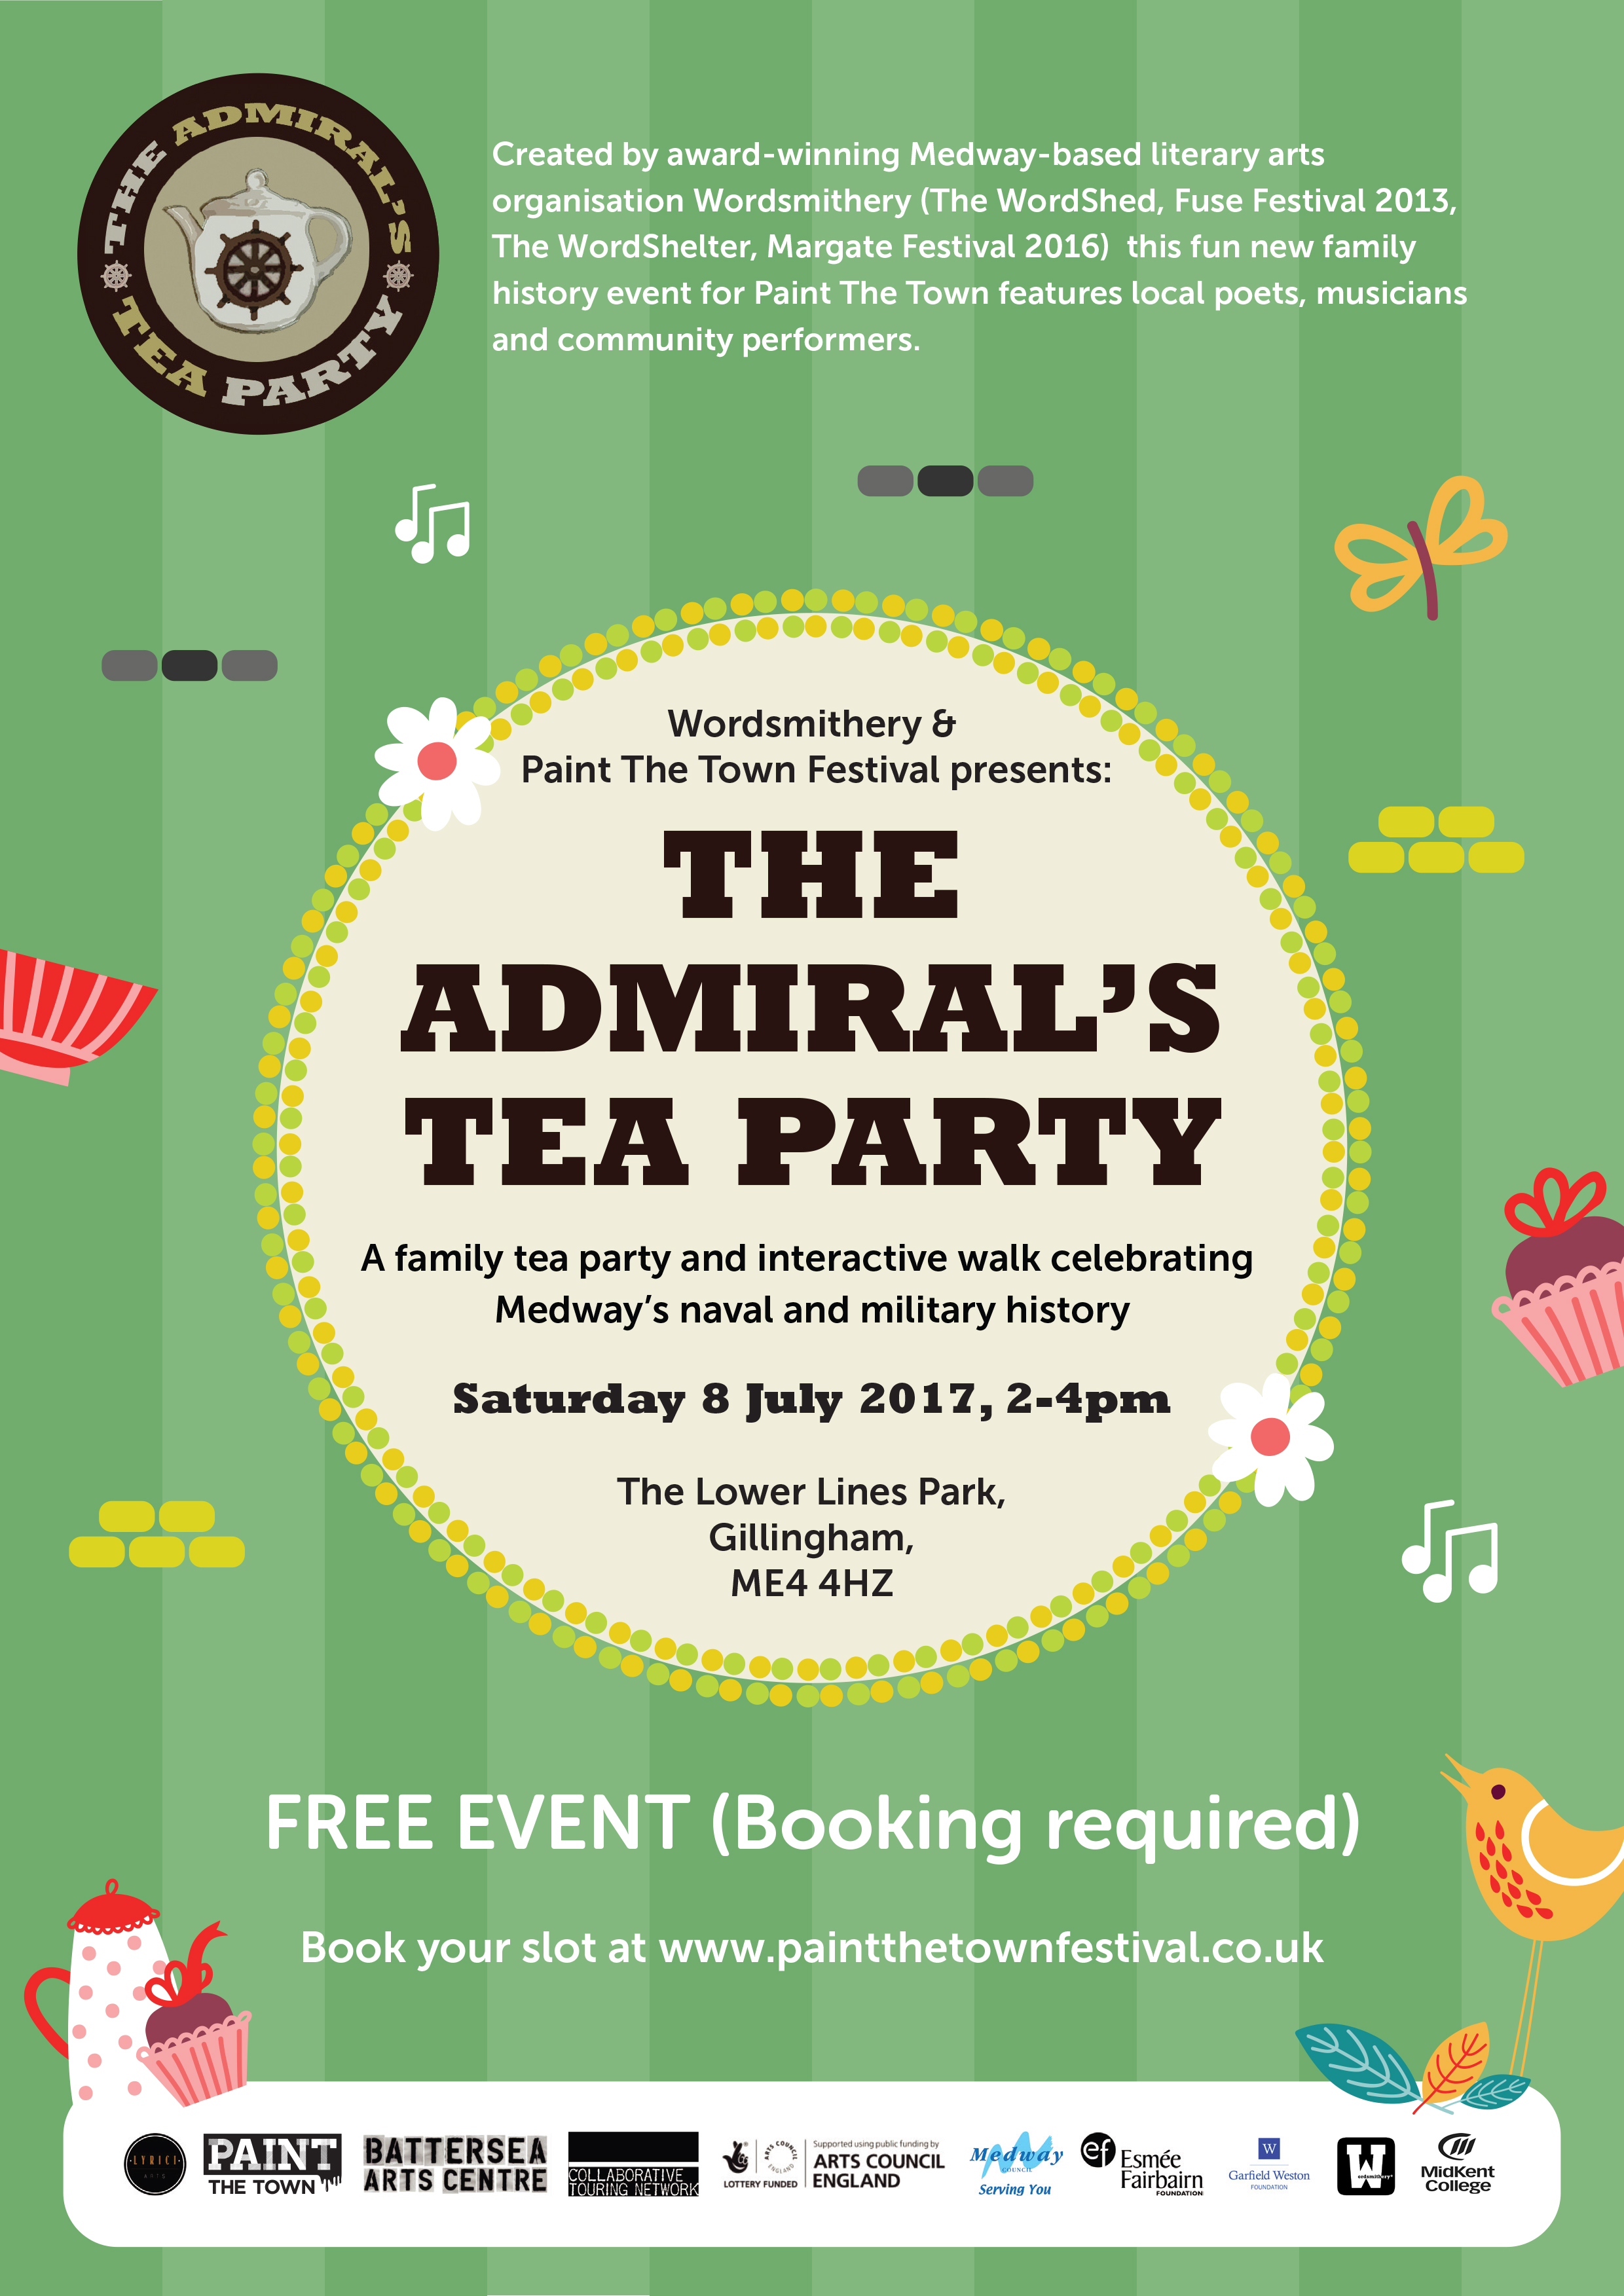 Paint The Town Year Round - The Admiral's Tea Party